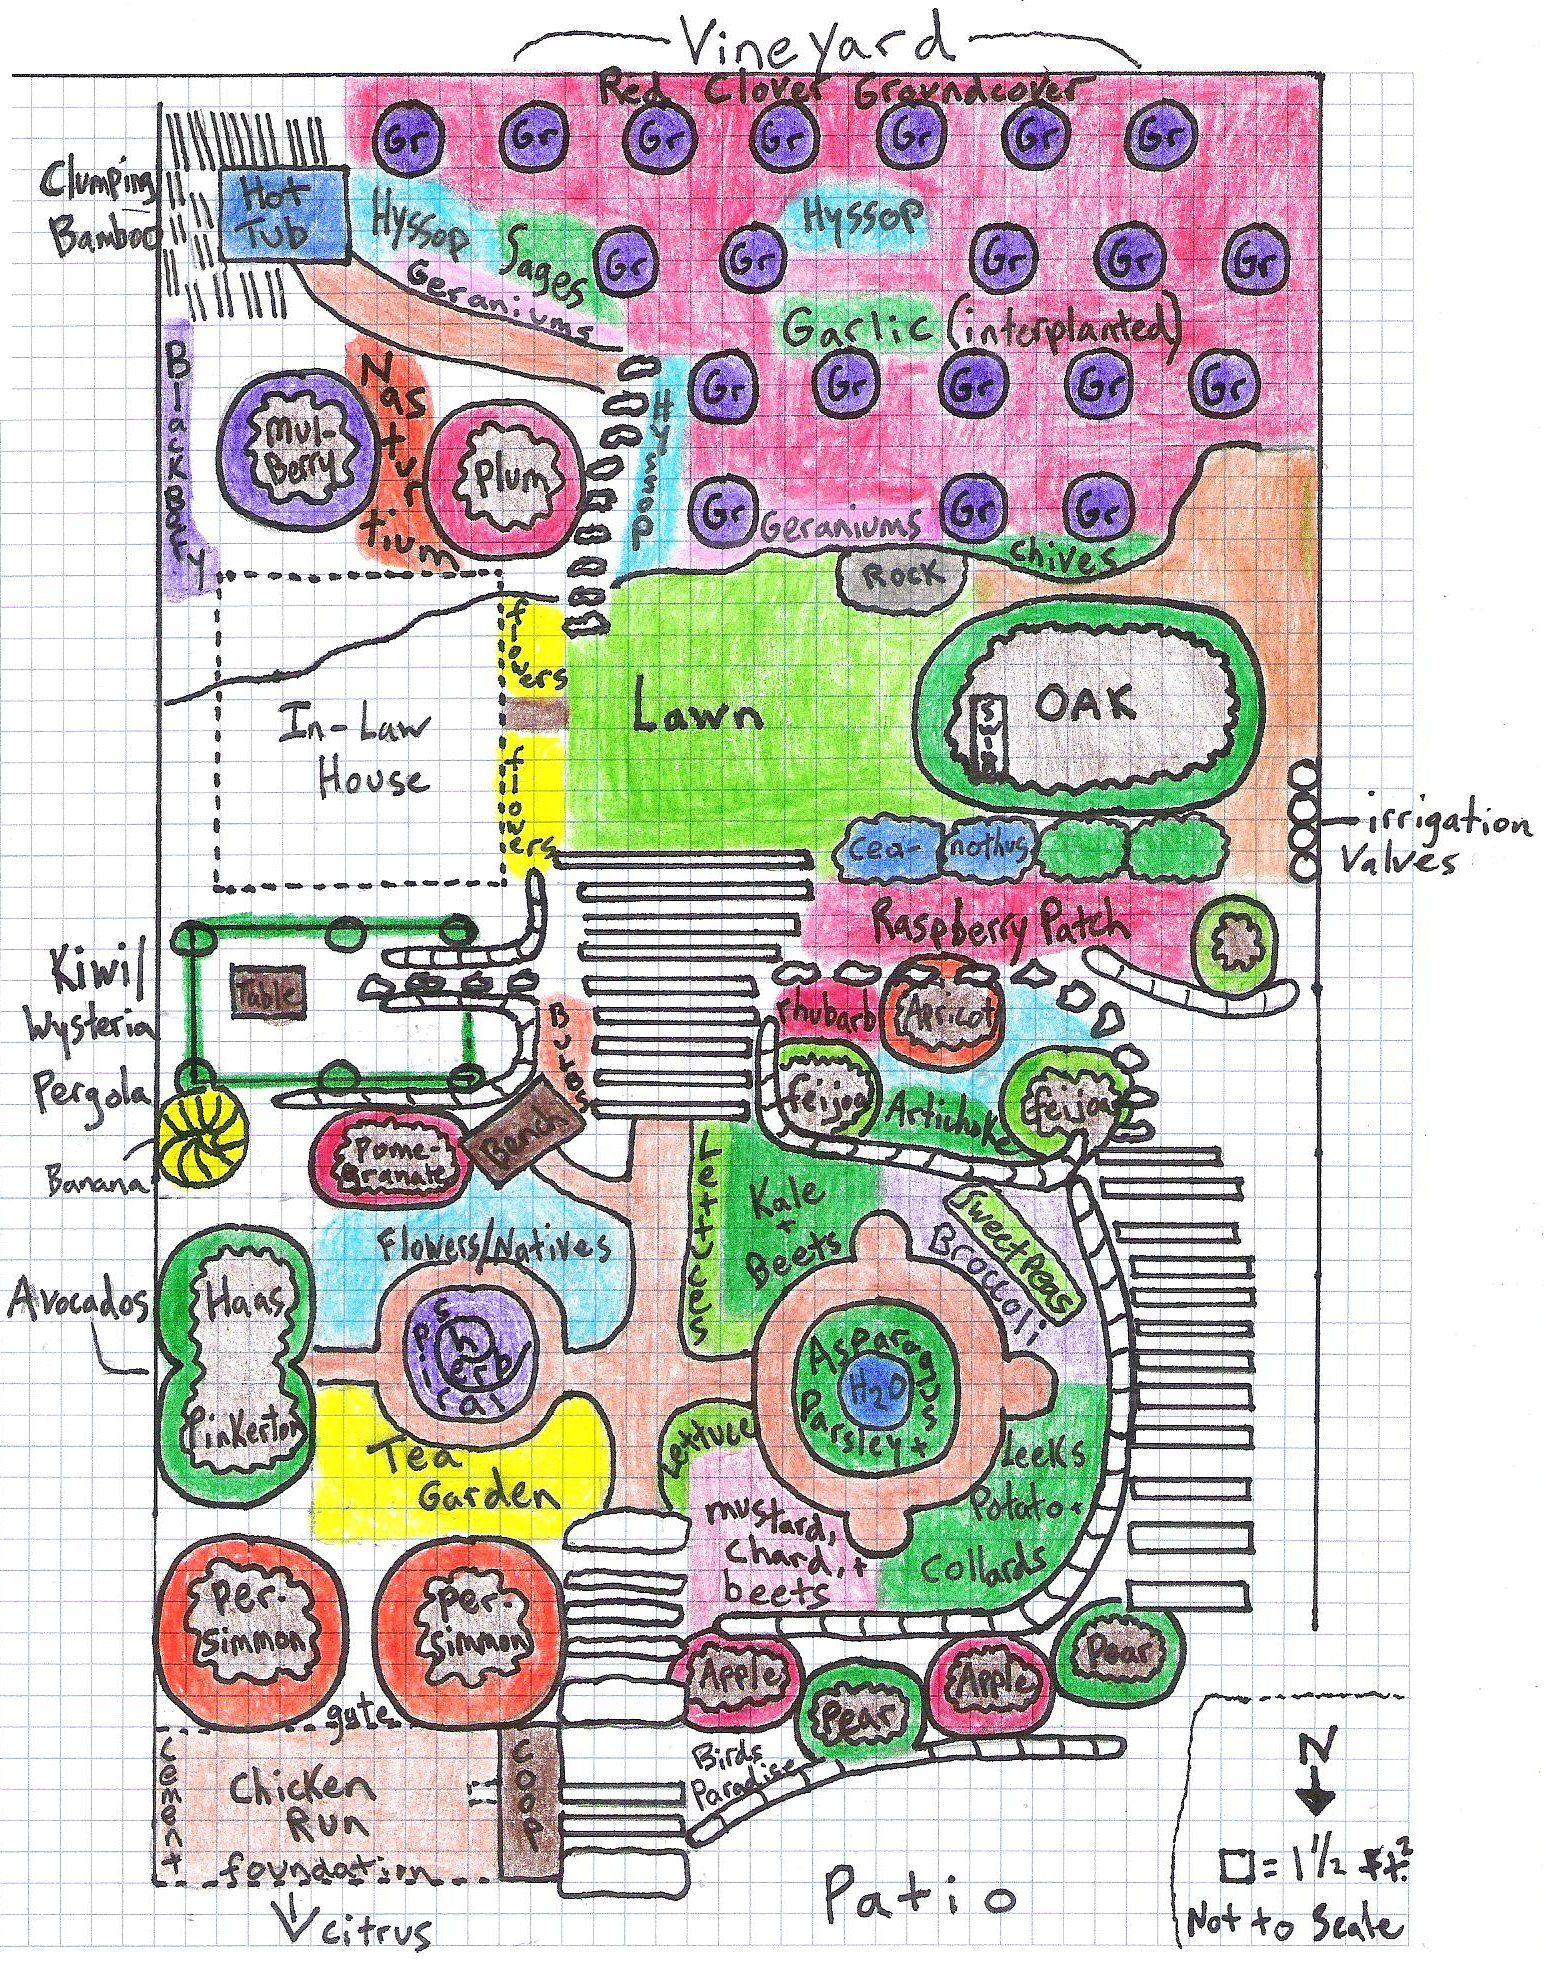 Permaculture Design Examples Google Search: A Permaculture Design For A Family In The Uplands